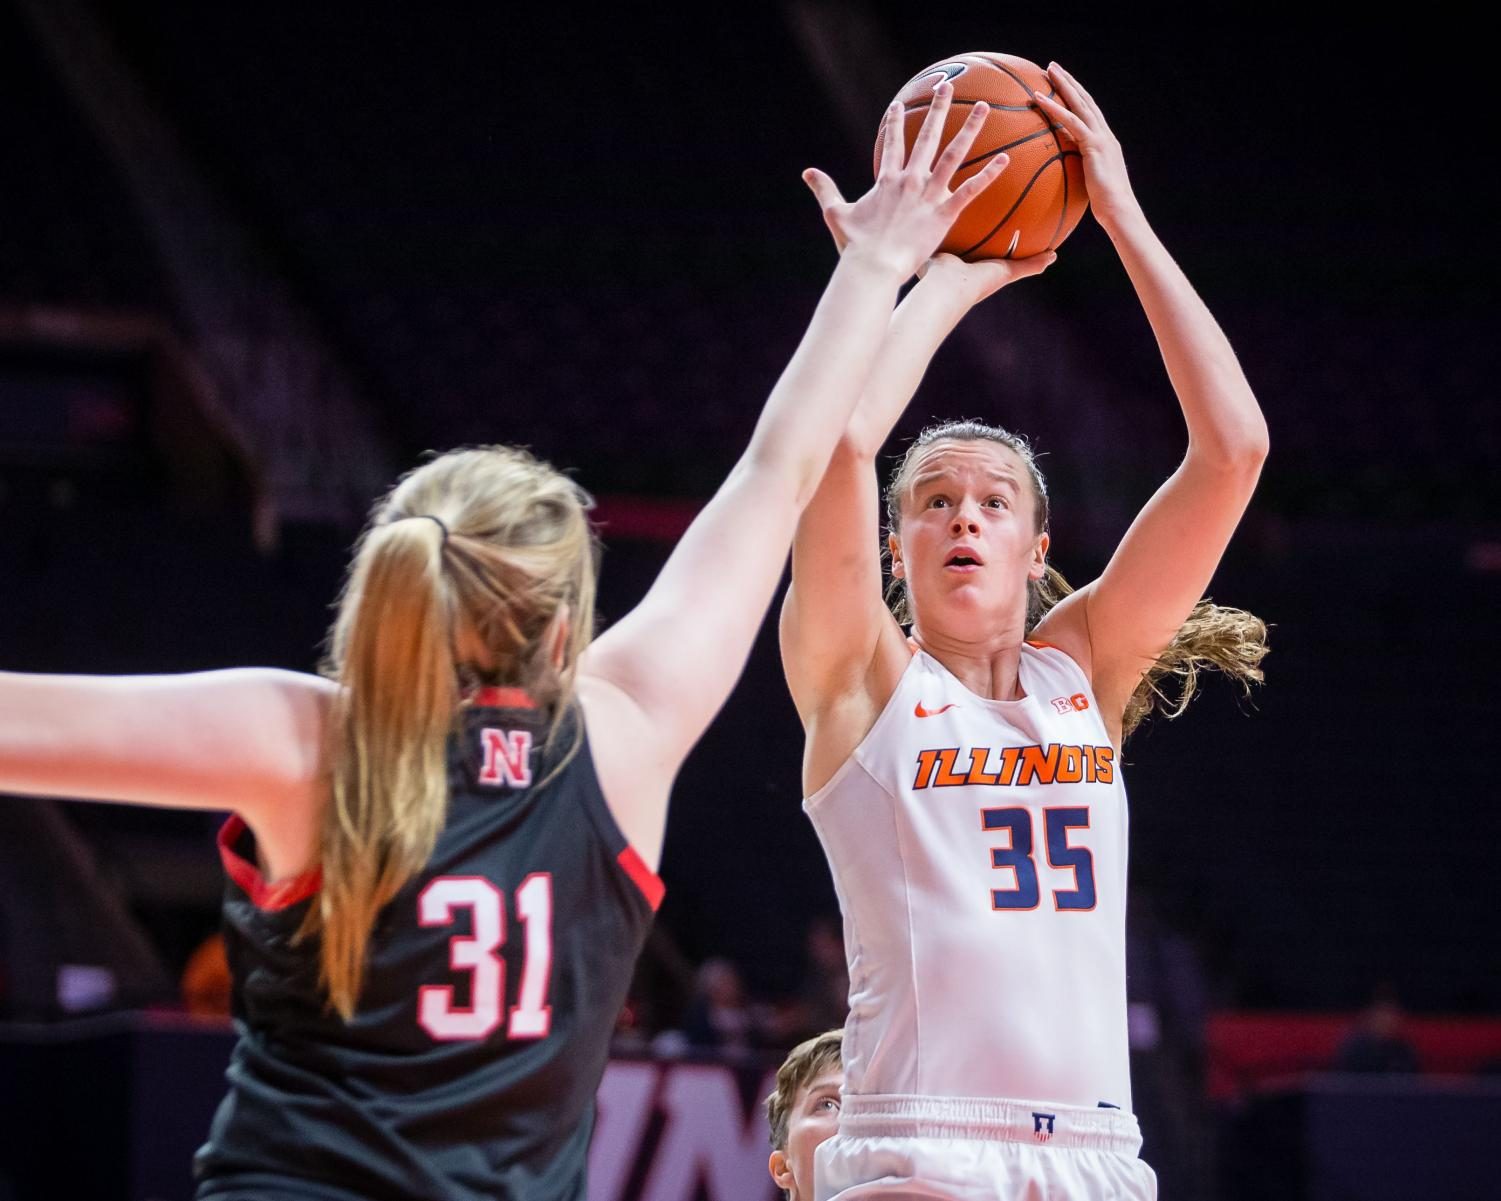 Illinois forward Alex Wittinger shoots the ball during the game against Nebraska at the State Farm Center on Jan. 17. The Illini lost 77-67. Illinois will be playing Ohio State on Thursday in hopes of breaking the Big Ten losing streak.